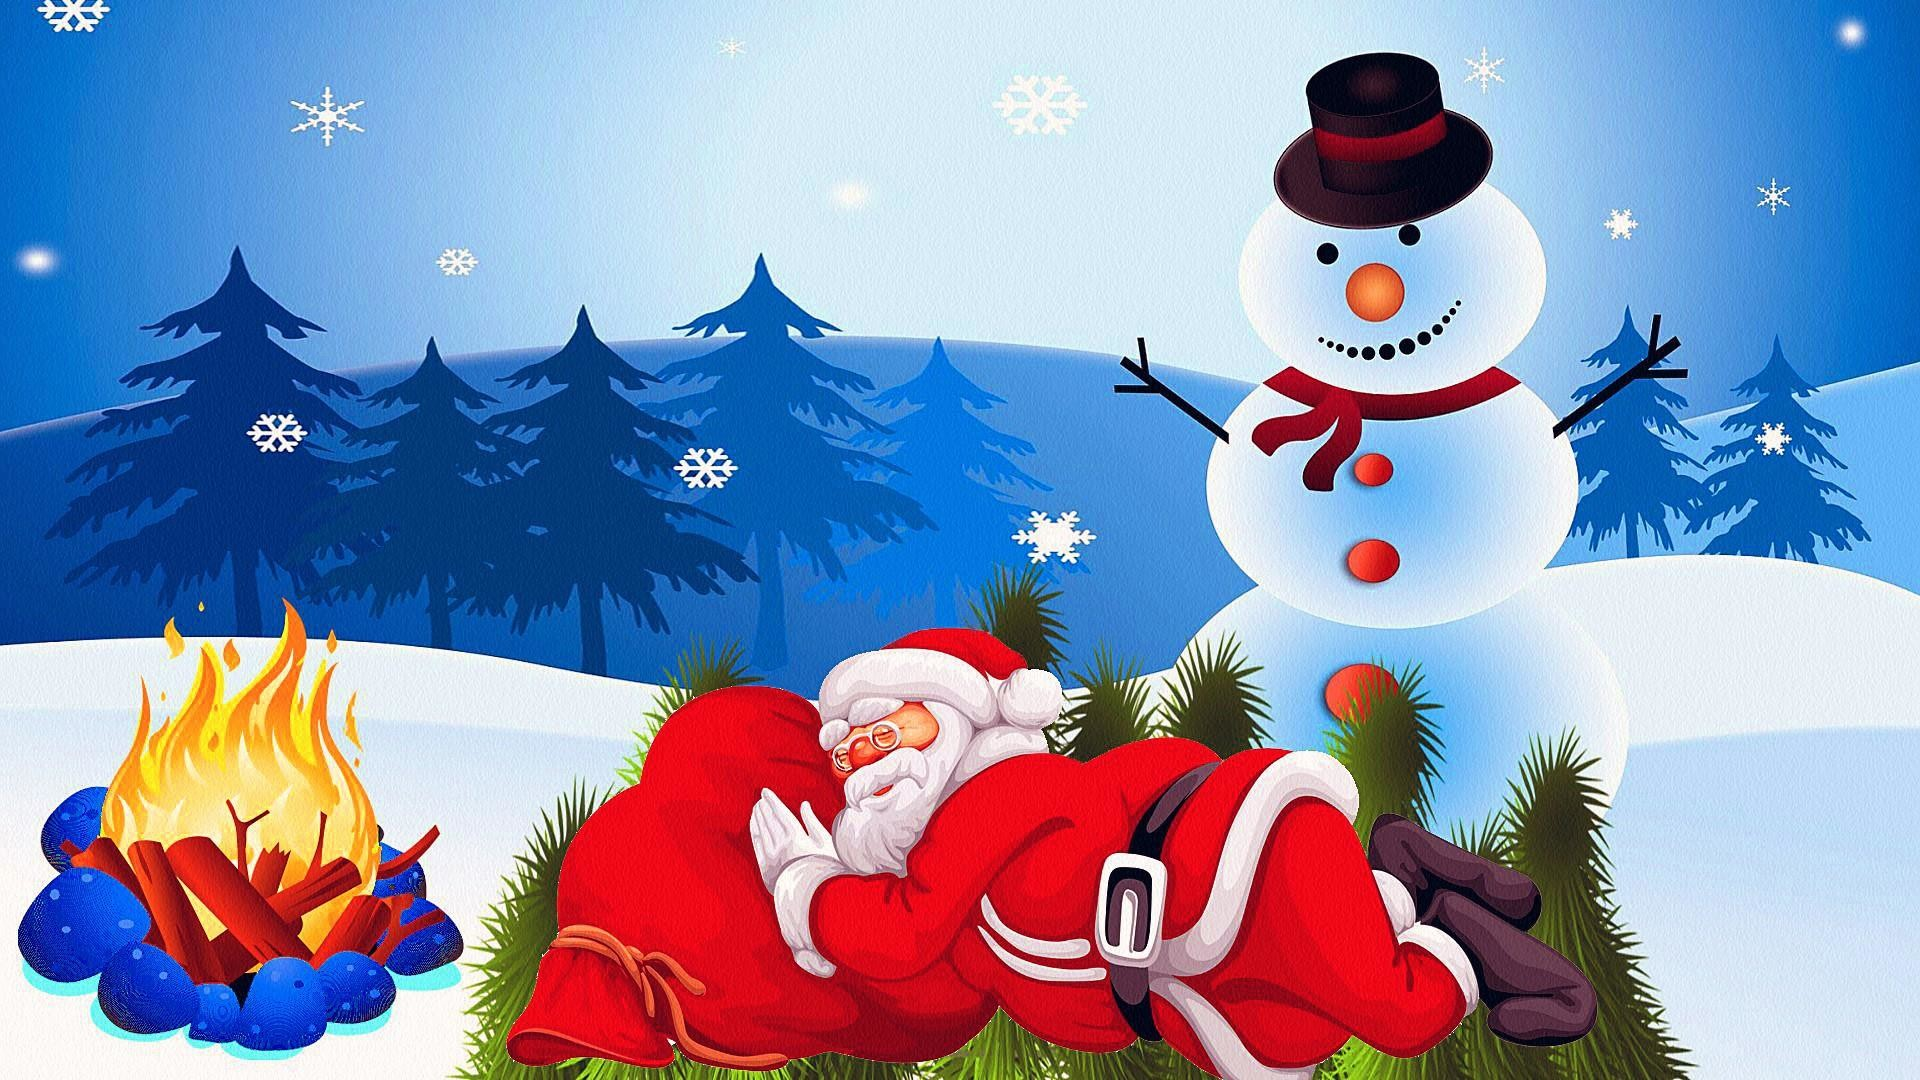 Res: 1920x1080, Lazy Santa Claus And A Snowman Wallpaper | Wallpaper Studio 10 | Tens of  thousands HD and UltraHD wallpapers for Android, Windows and Xbox